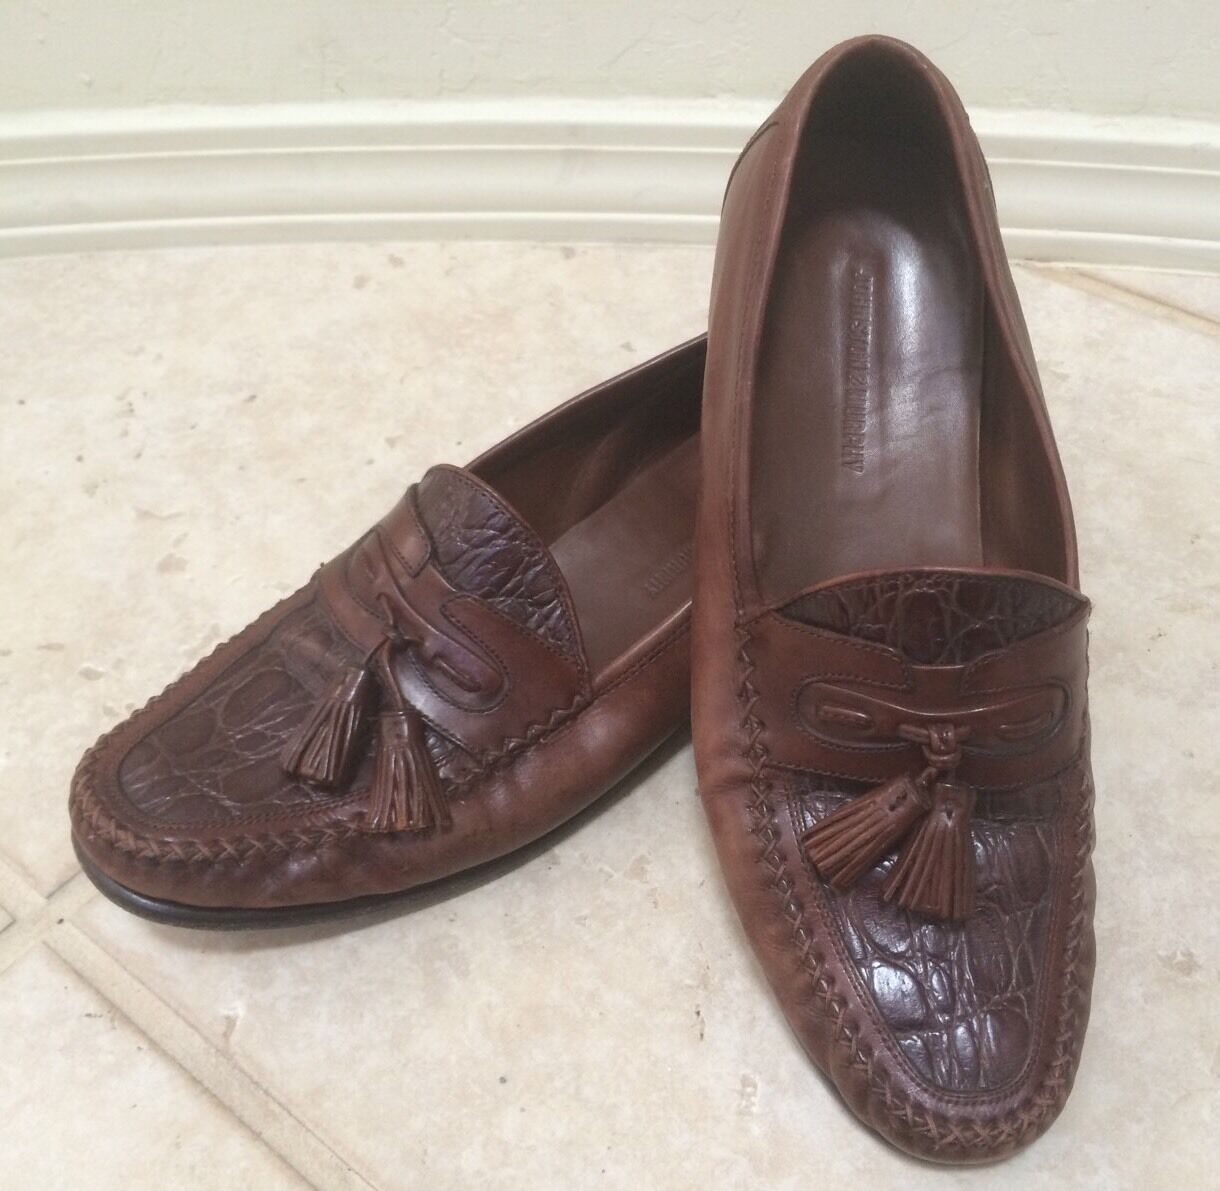 Uomo scarpe Dimensione 10 M Dark Tan Leather Slip On On On Tassel Loafers Johnston & Murphy 705c2c